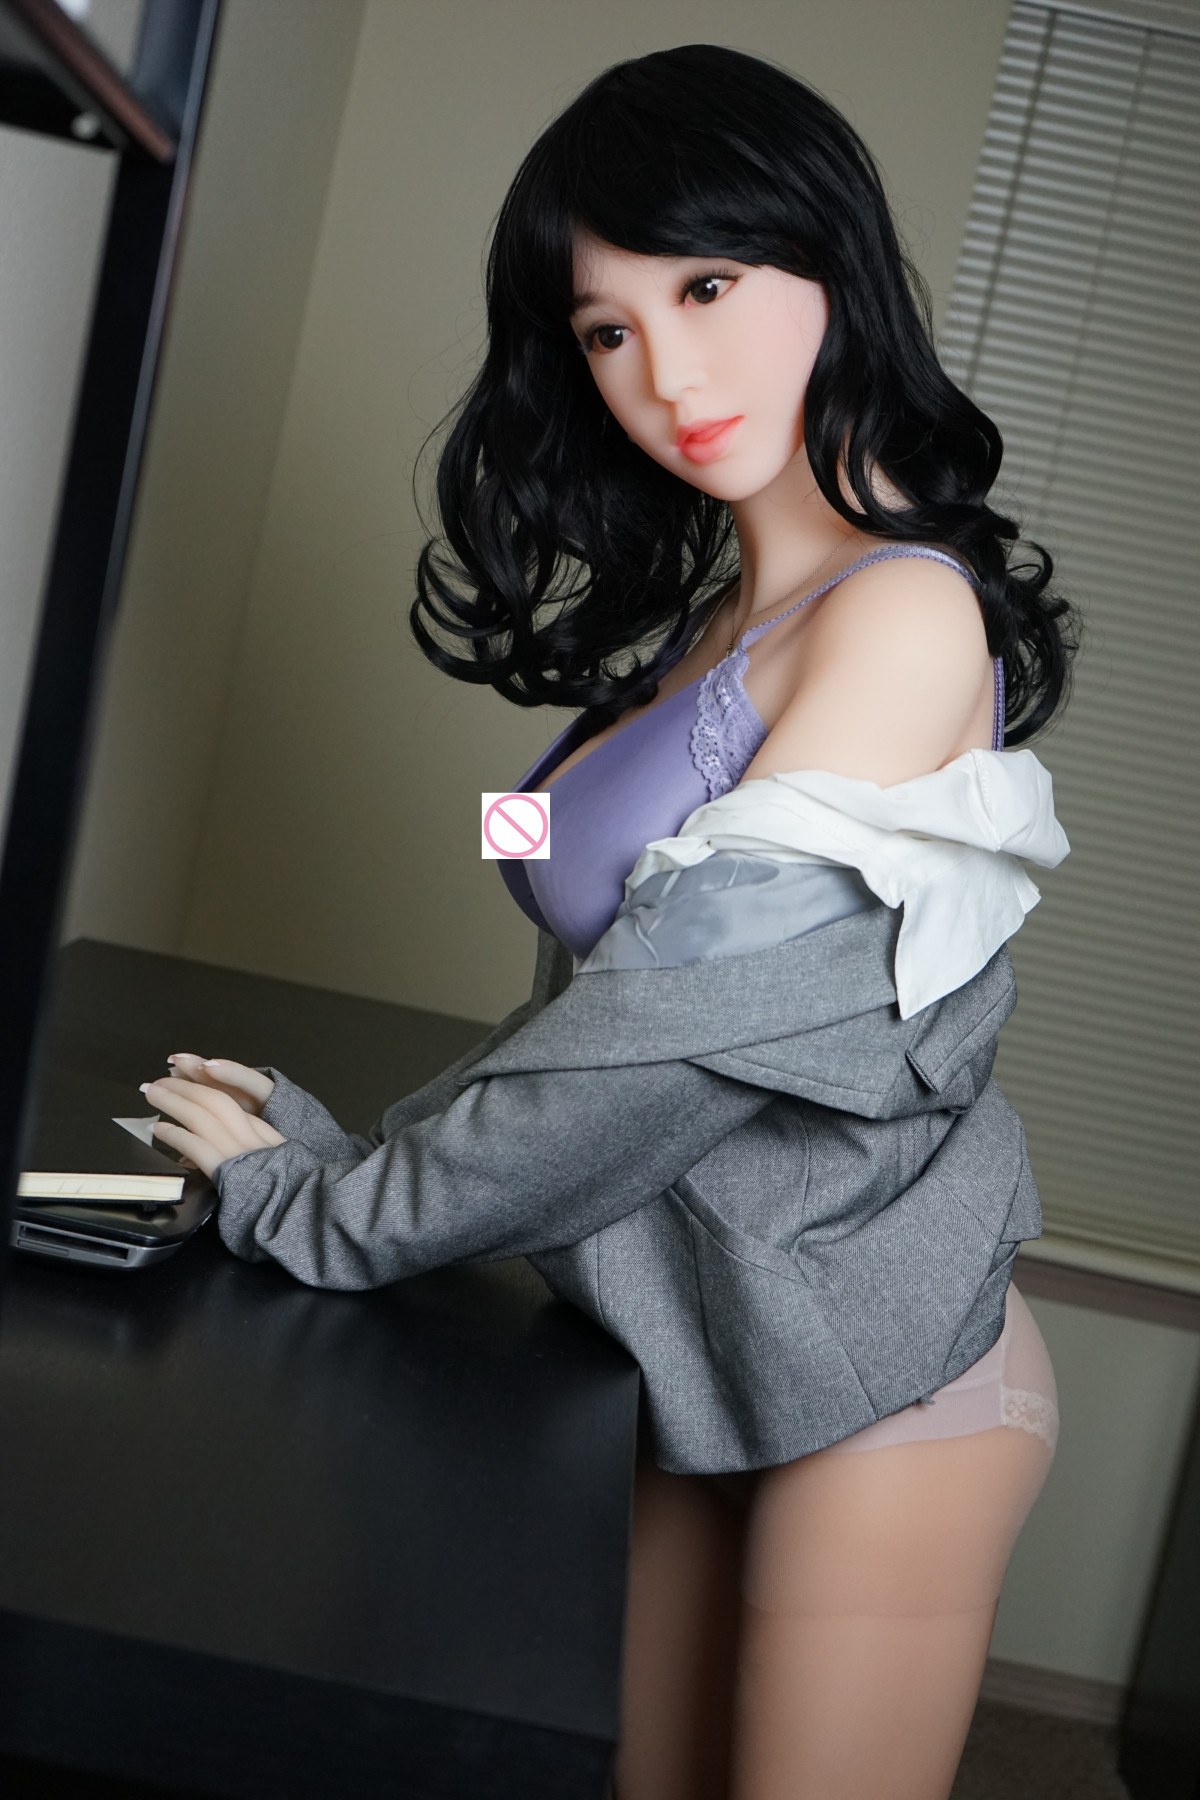 WMDOOL Realistic Sex Dolls Adult Real Life Like Latex Love Doll 2016 Solid Posable Sex Doll Wholesale For Sale Silicone Sex TOY(China (Mainland))